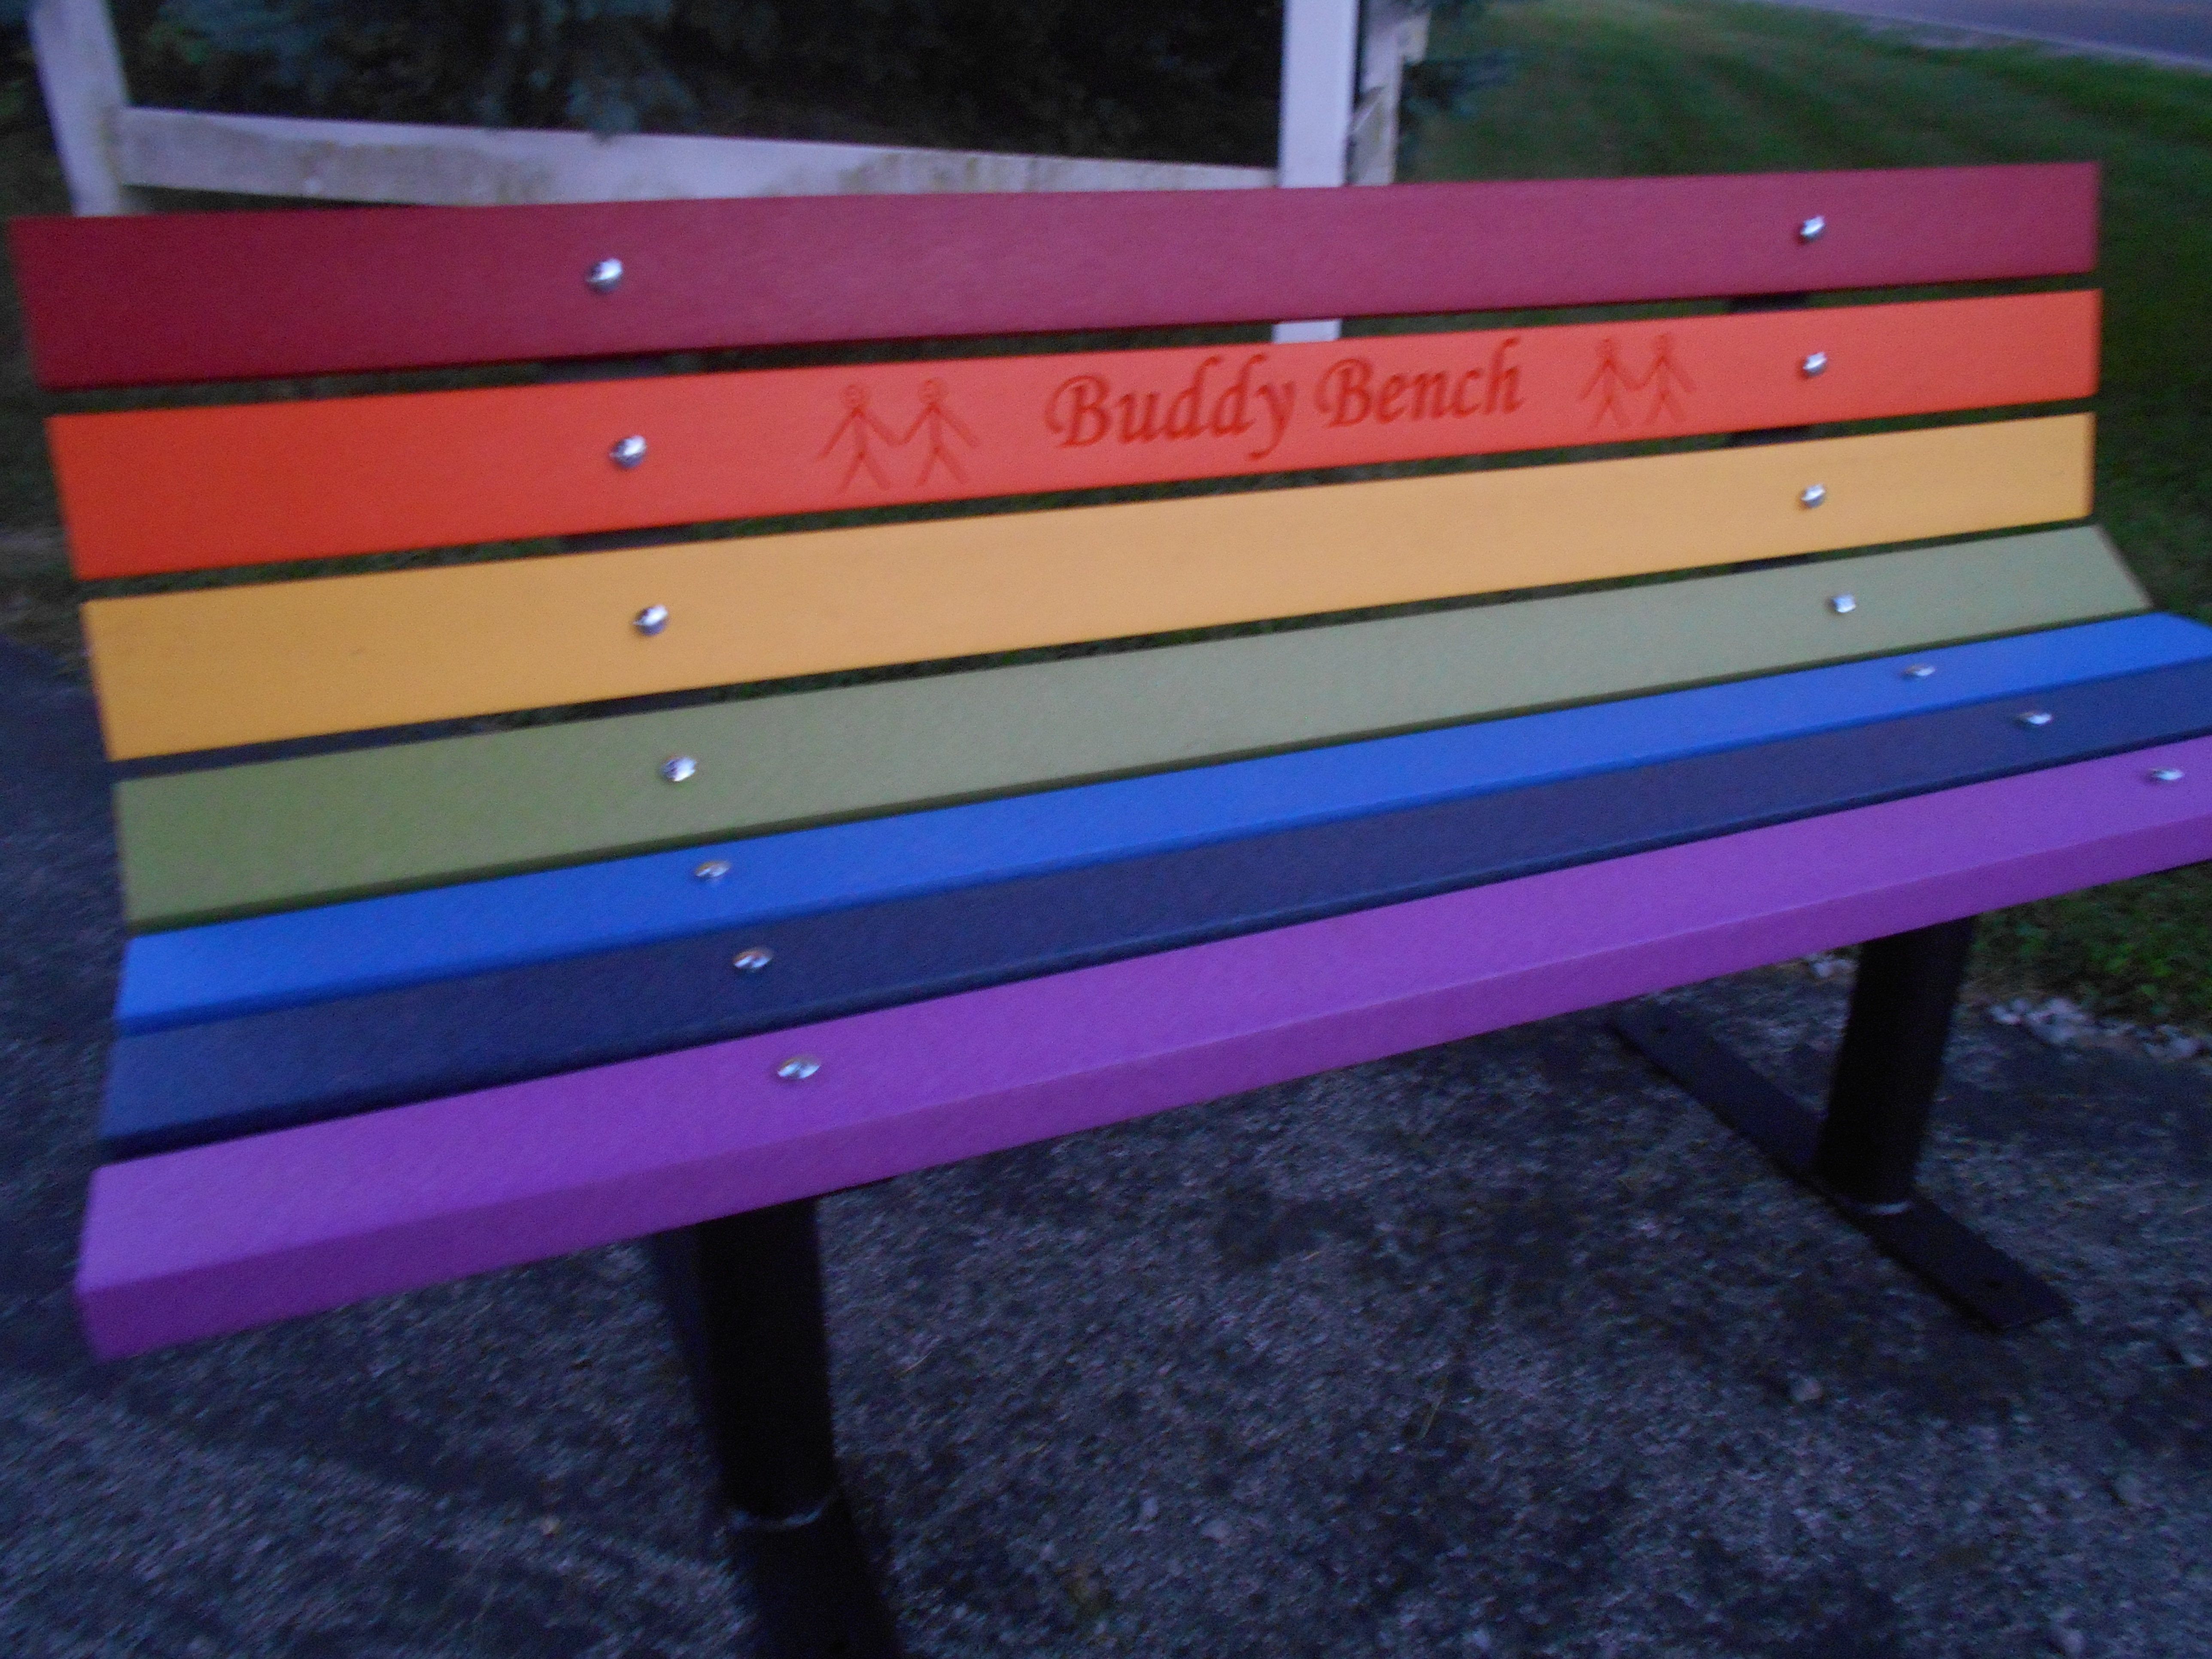 Buddy Bench Vibrant Rainbow Colors